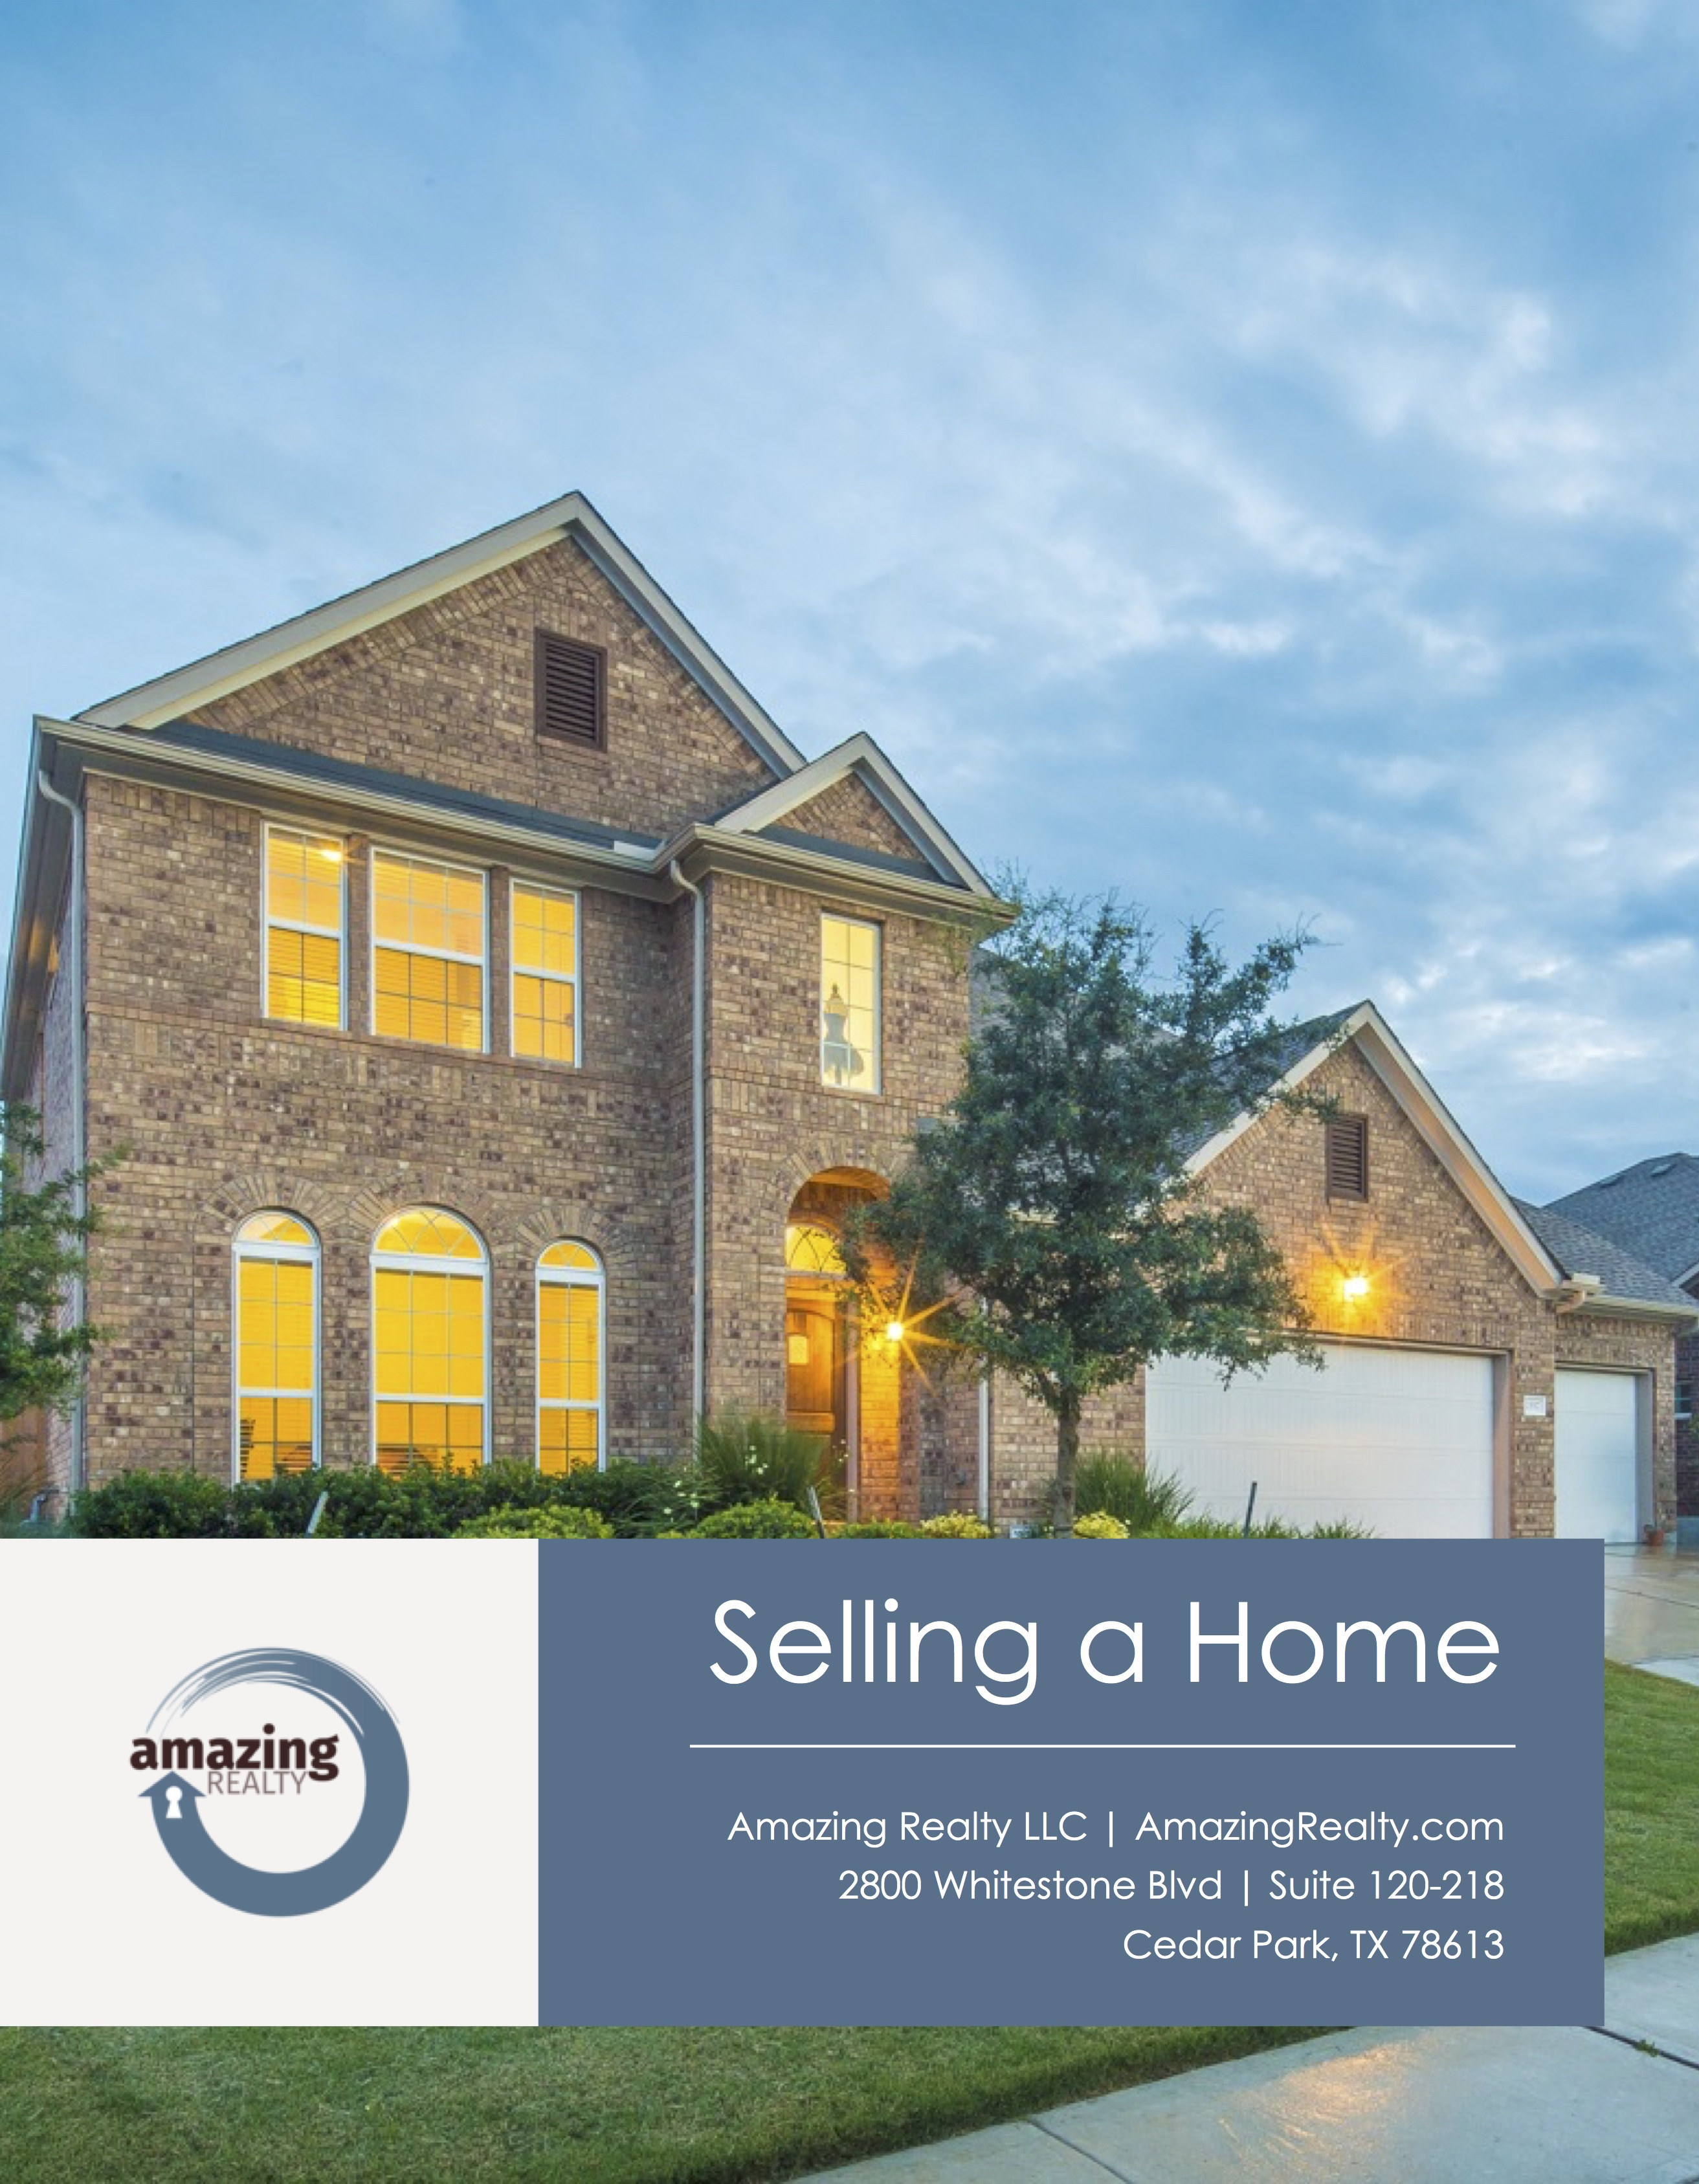 Listing Package - Amazing Realty built by Agent Operations